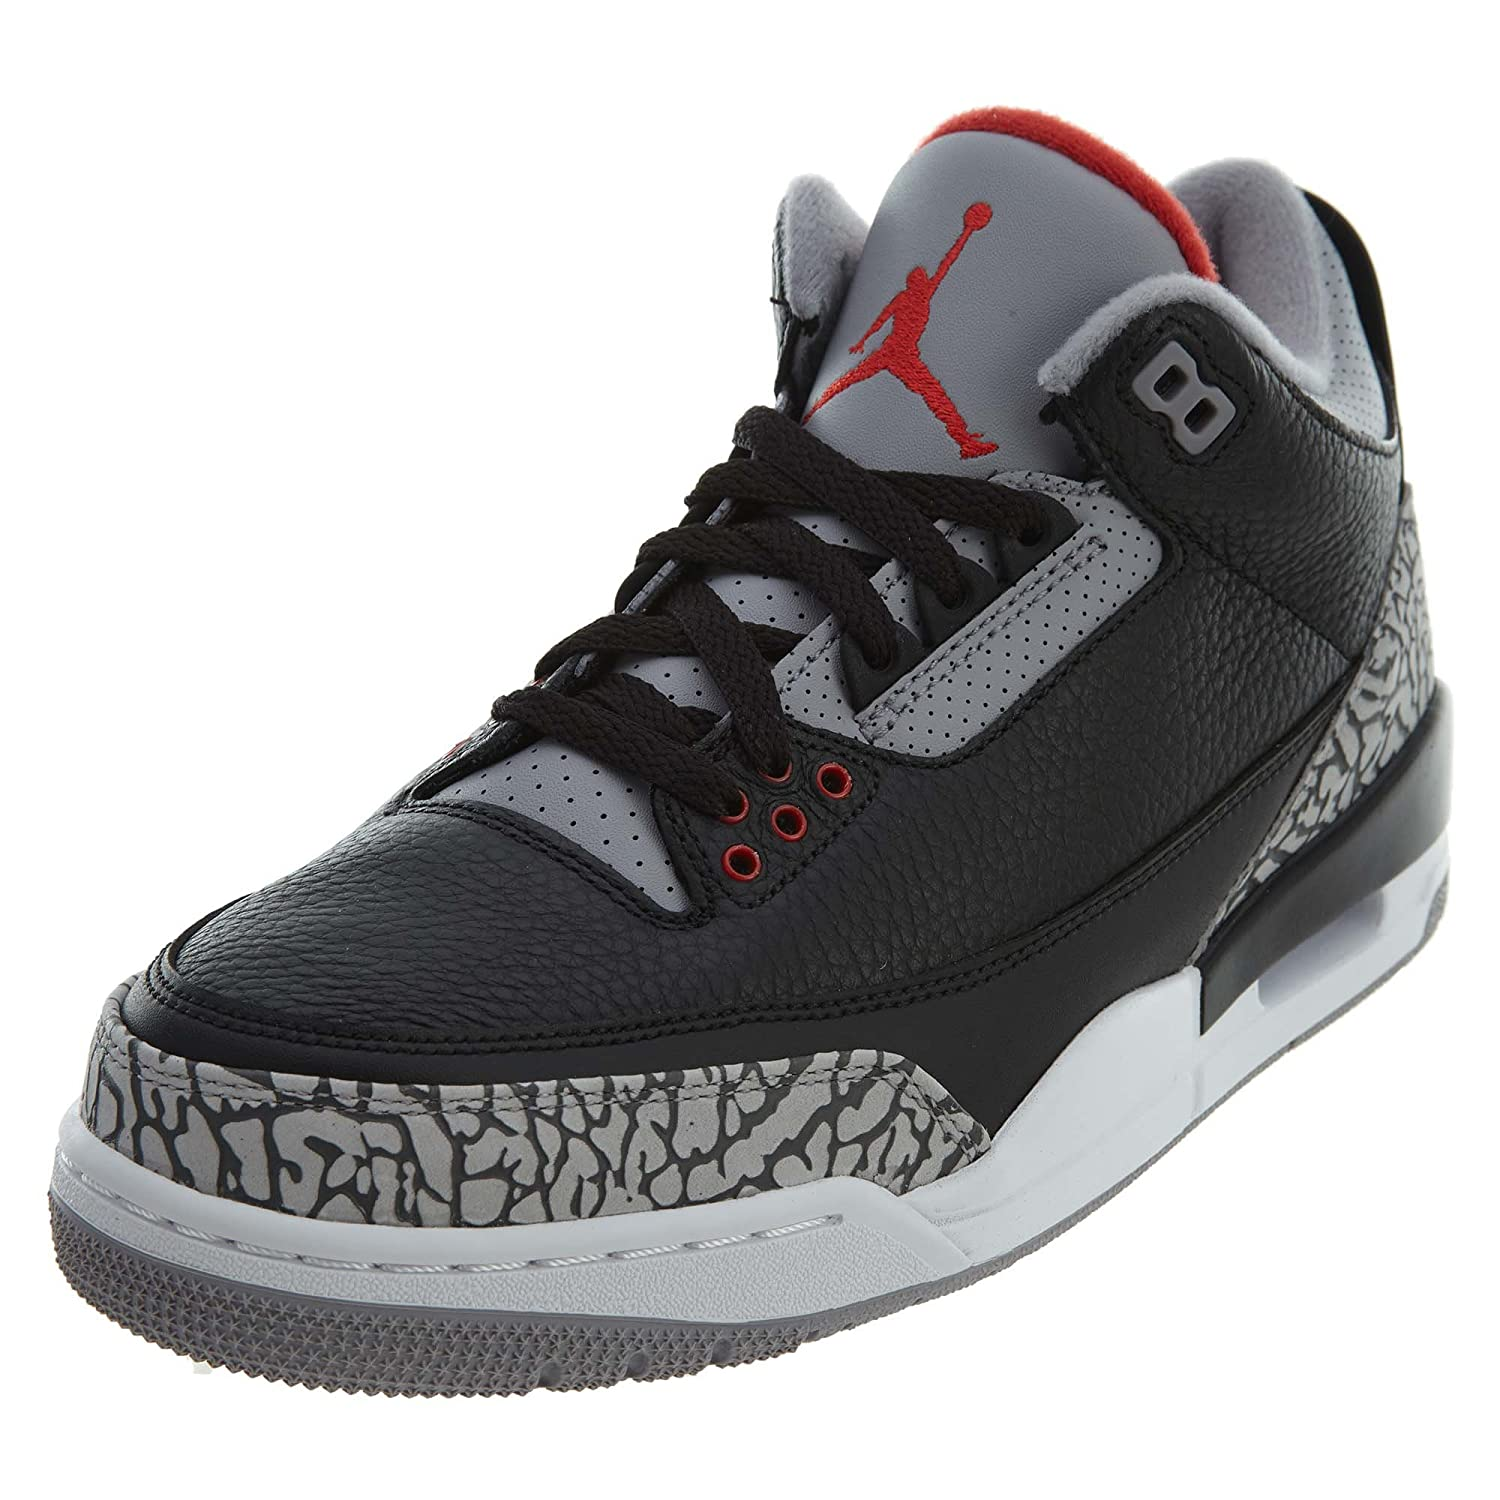 the best attitude 7697e bd7b3 Jordan Men's Air 3 Retro OG, BLACK/FIRE RED-CEMENT GREY, 11 M US